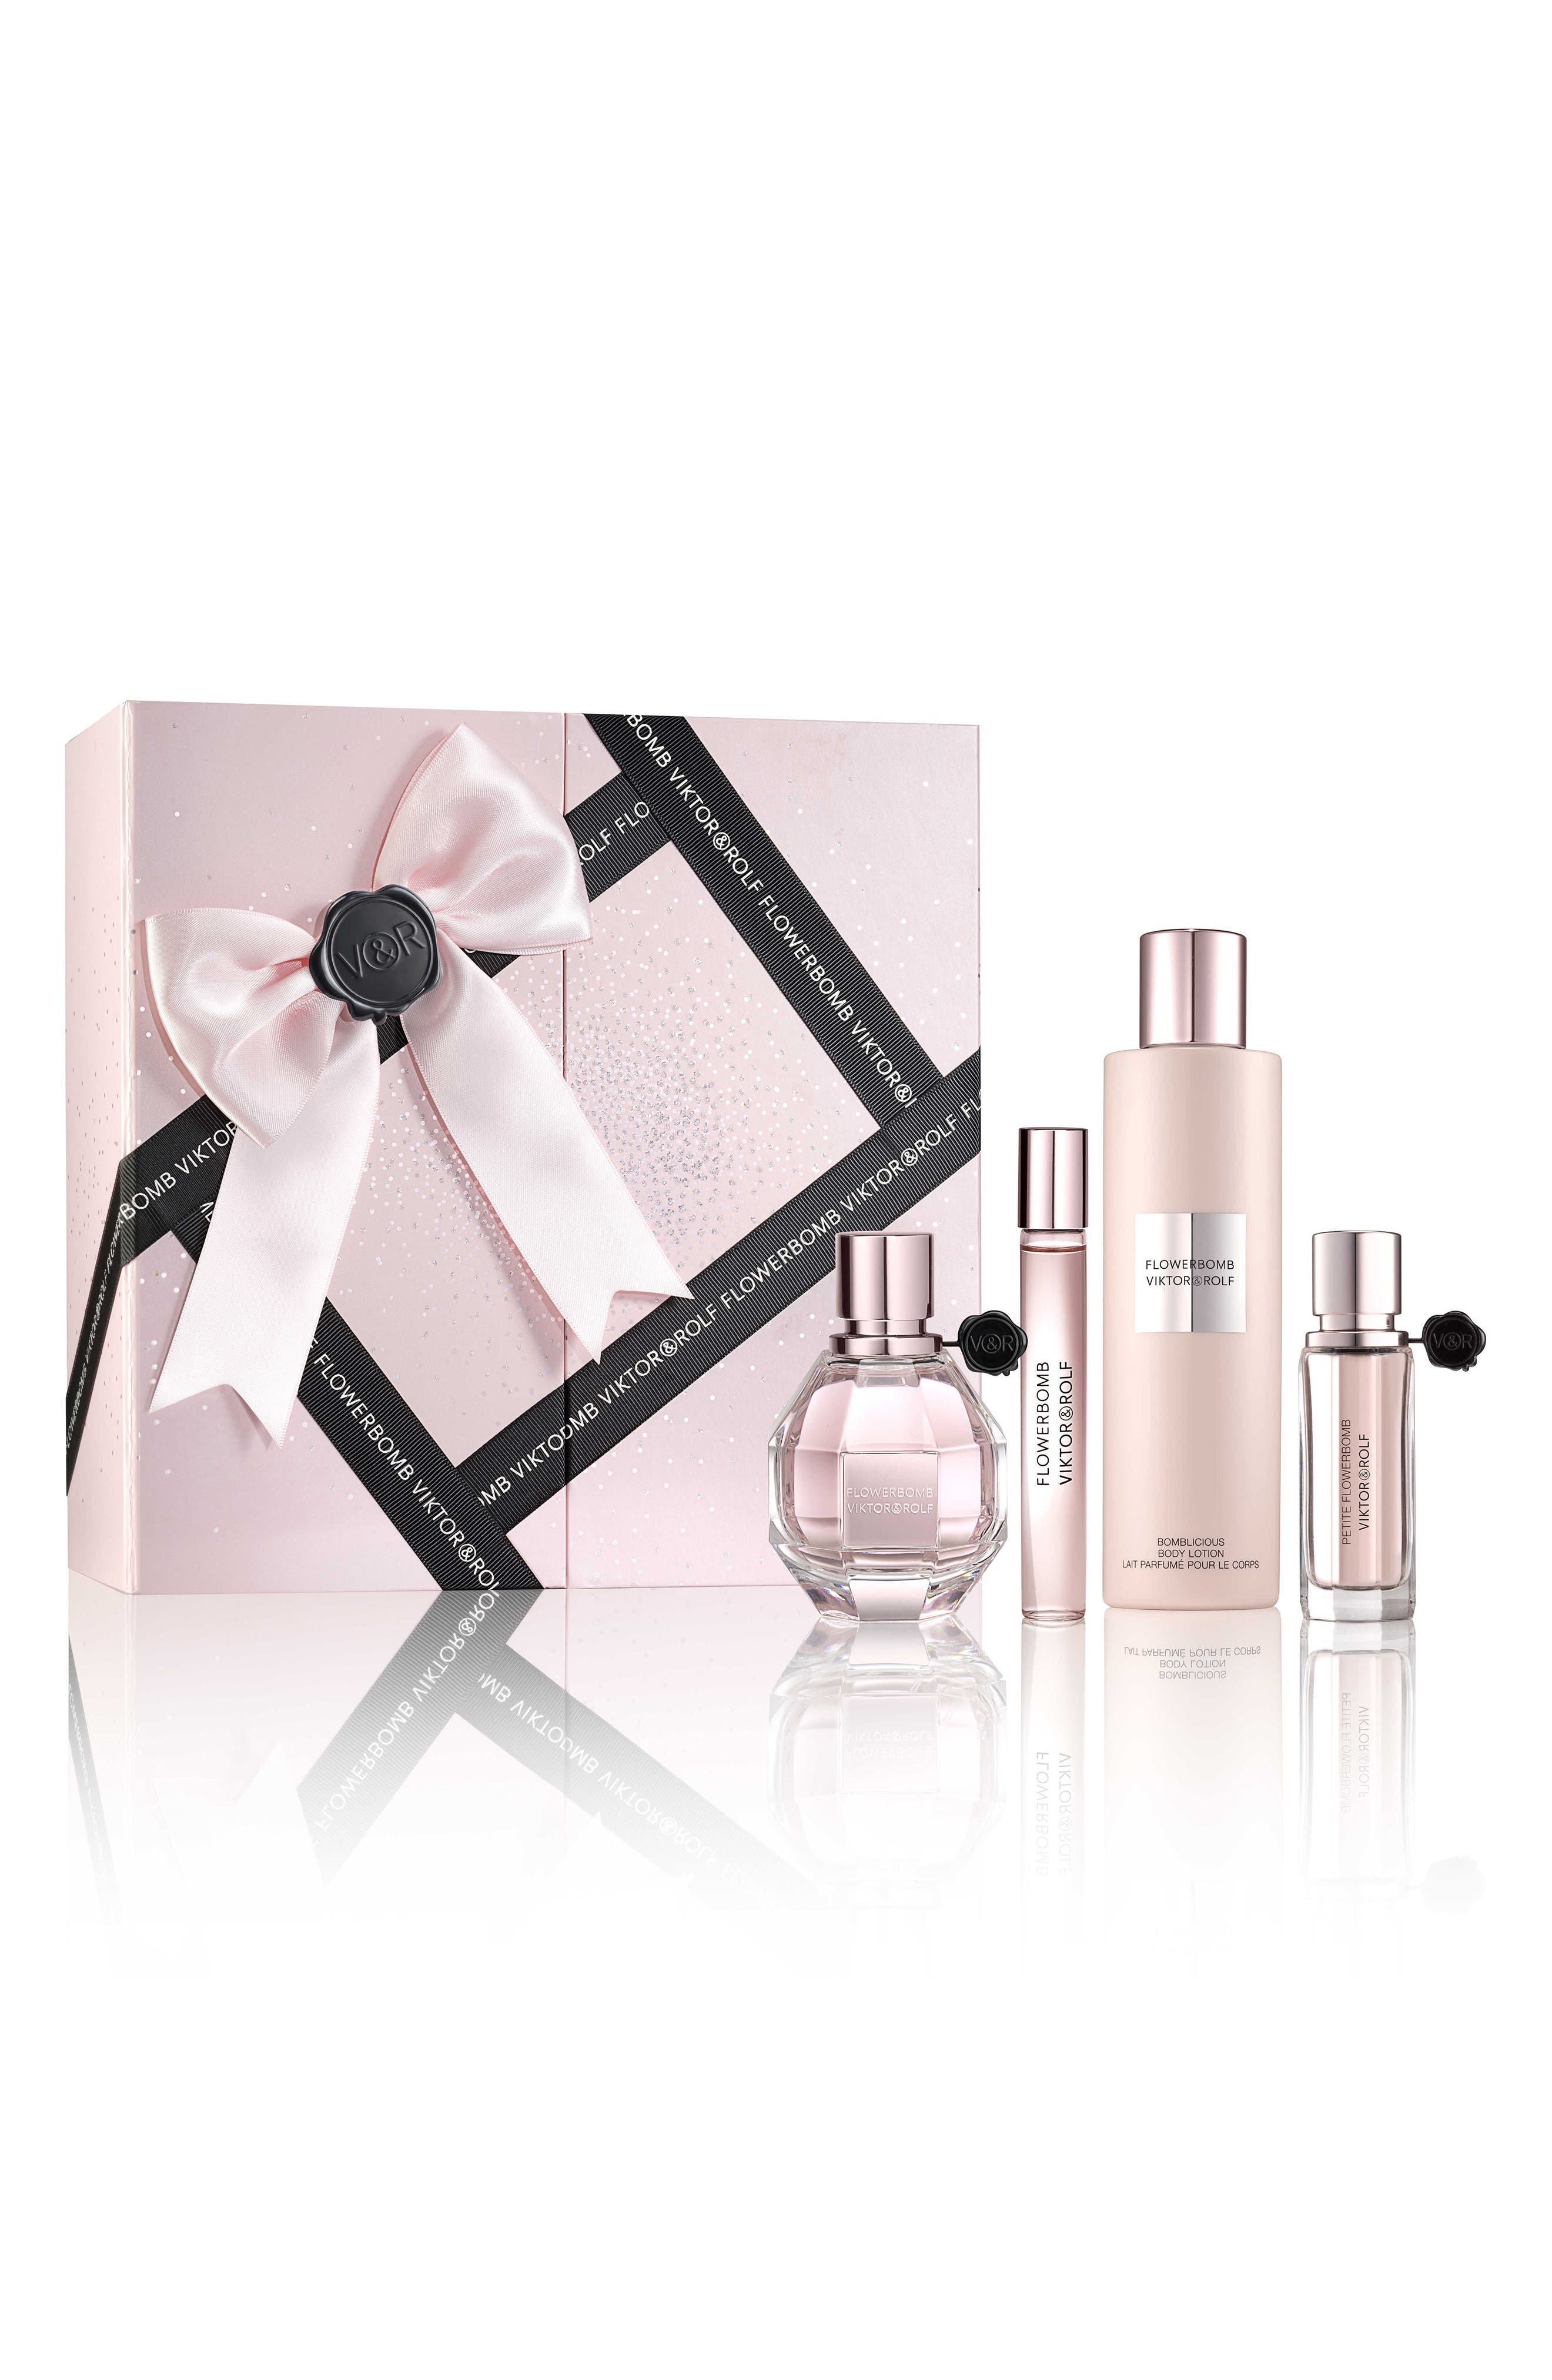 Flowerbomb Four-Piece Luxury Set,                         Main,                         color, No Color